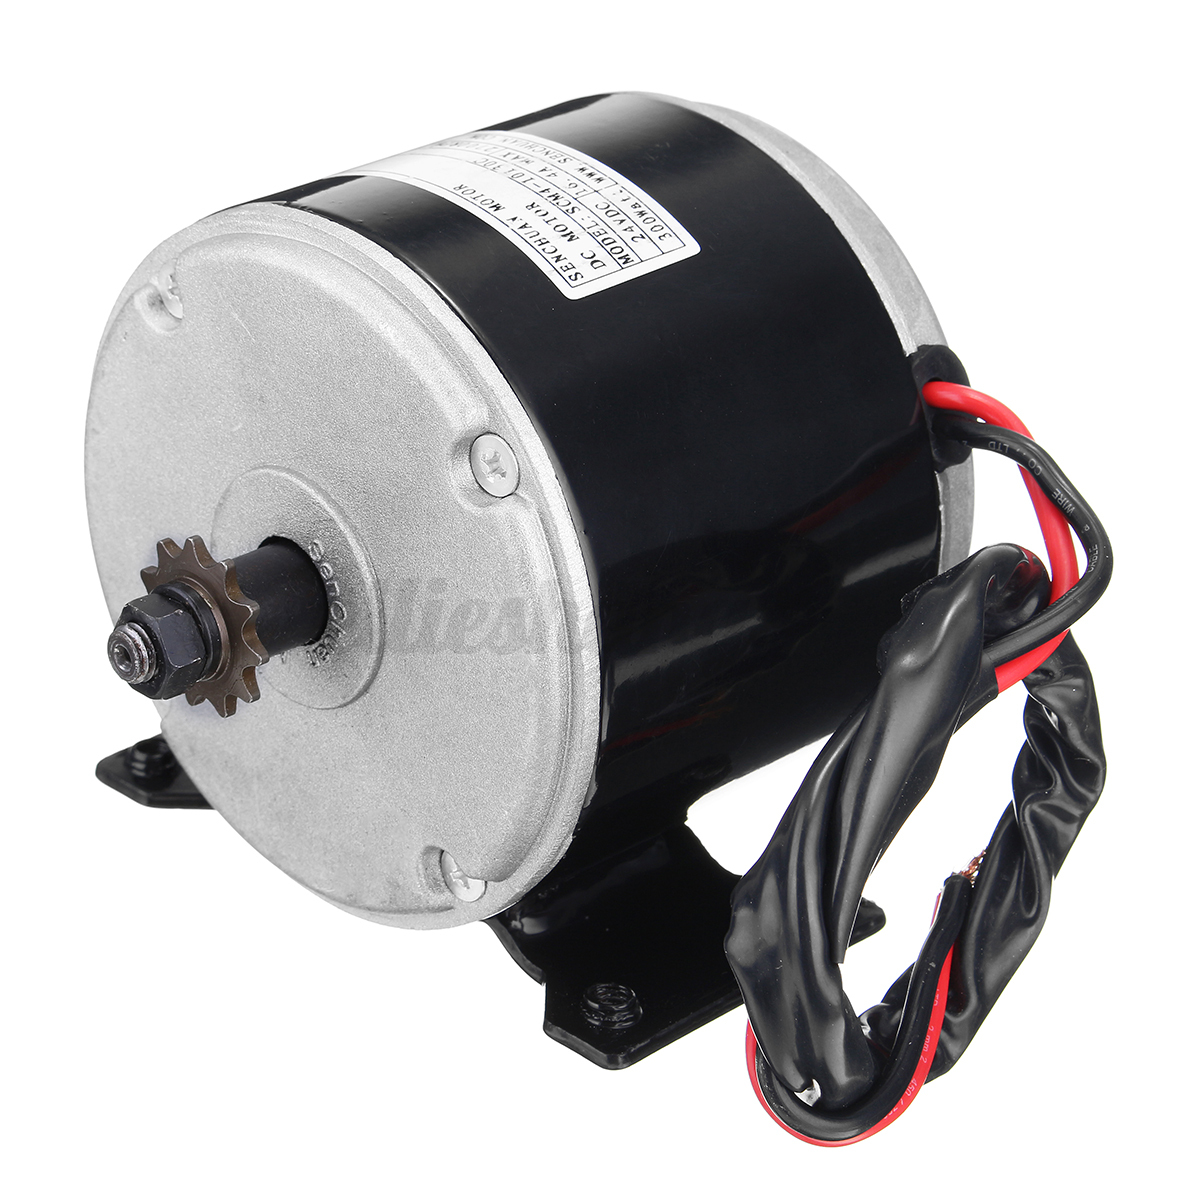 permanent magnetmotor dc 24v generator windturbine perpetuum mobile diy 4 pols ebay. Black Bedroom Furniture Sets. Home Design Ideas